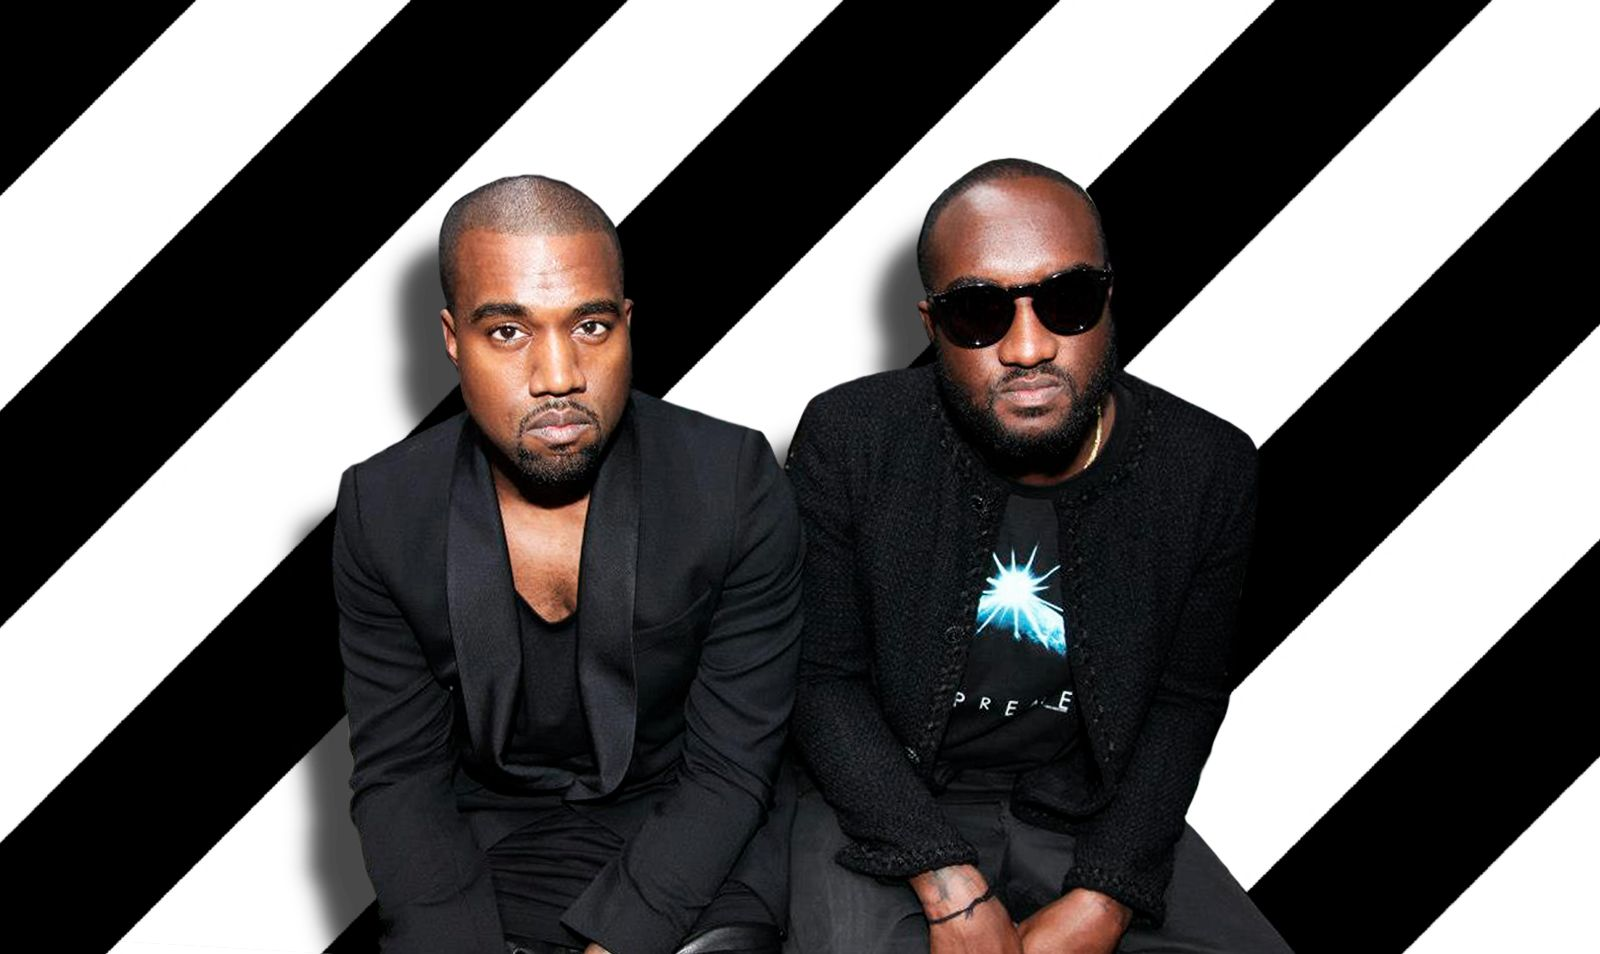 Kayne-west-virgil-abloh-friends-azmt